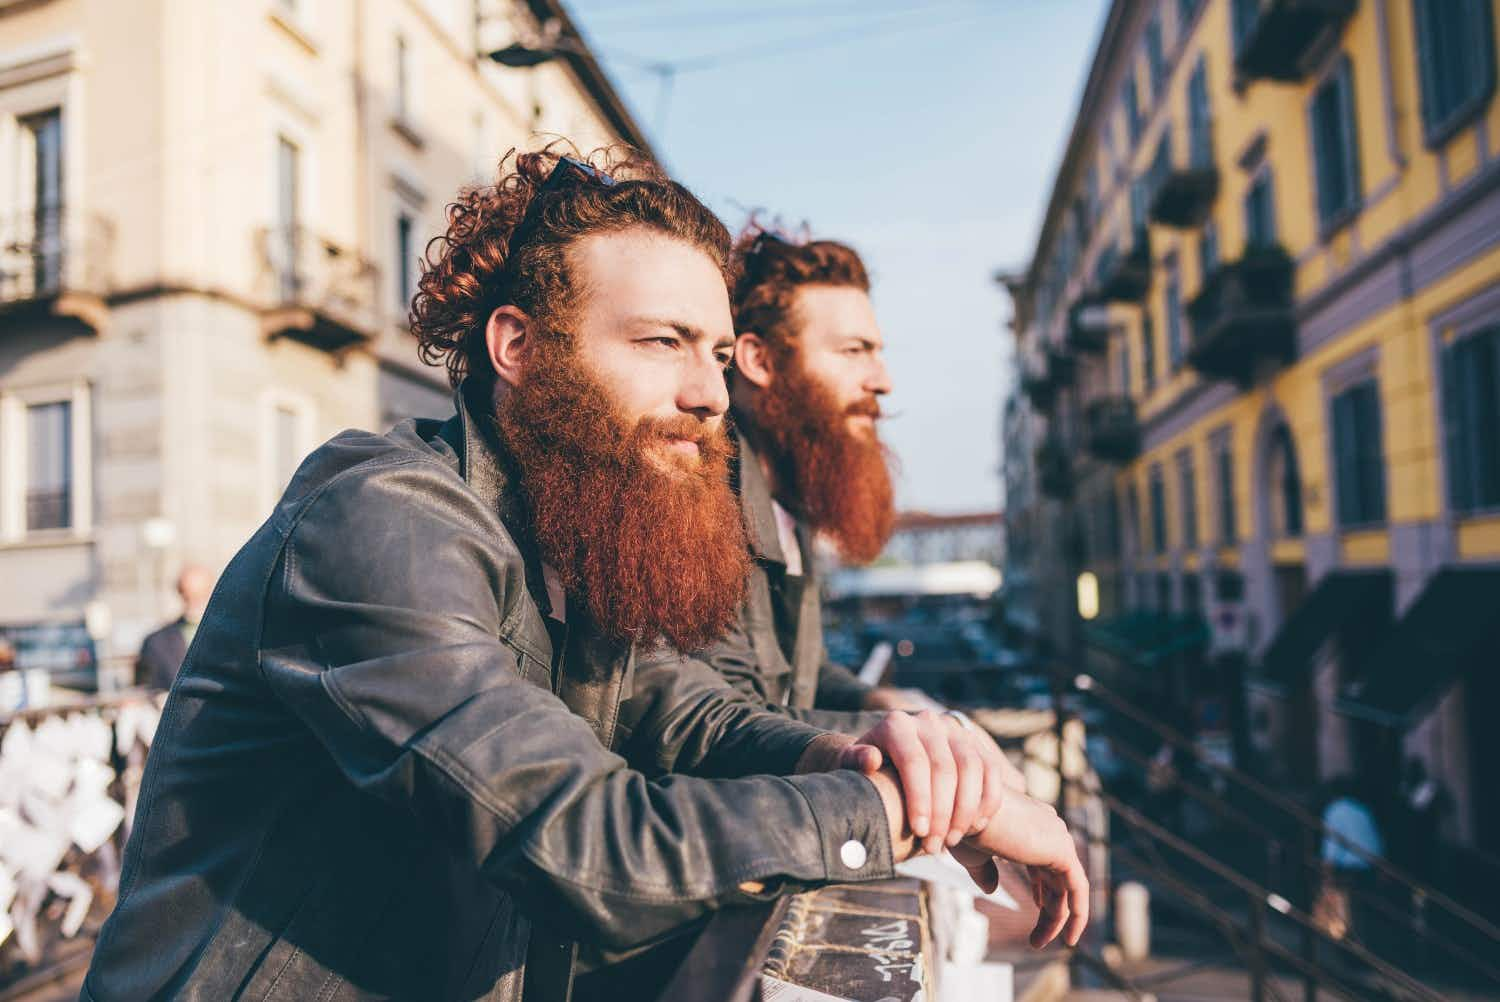 Philadelphia has been named the most 'facial hair-friendly' city in the US